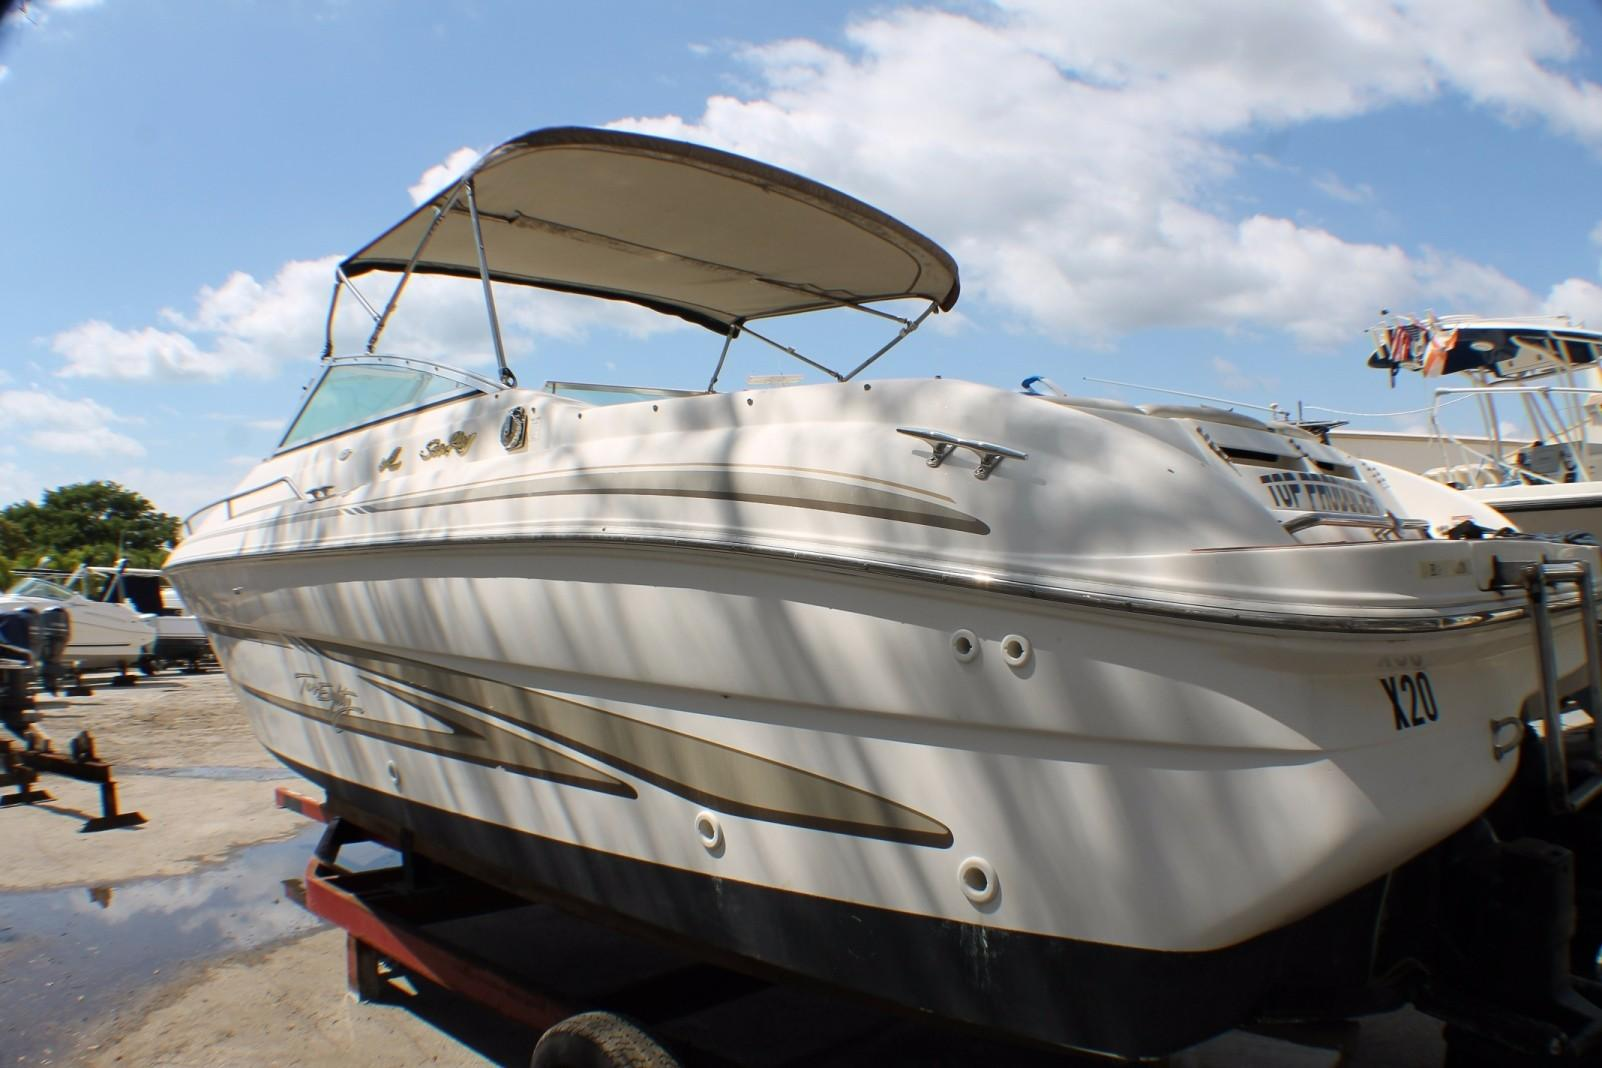 1997 Used Sea Ray 280 Bowrider Boat - Year of Clean Water